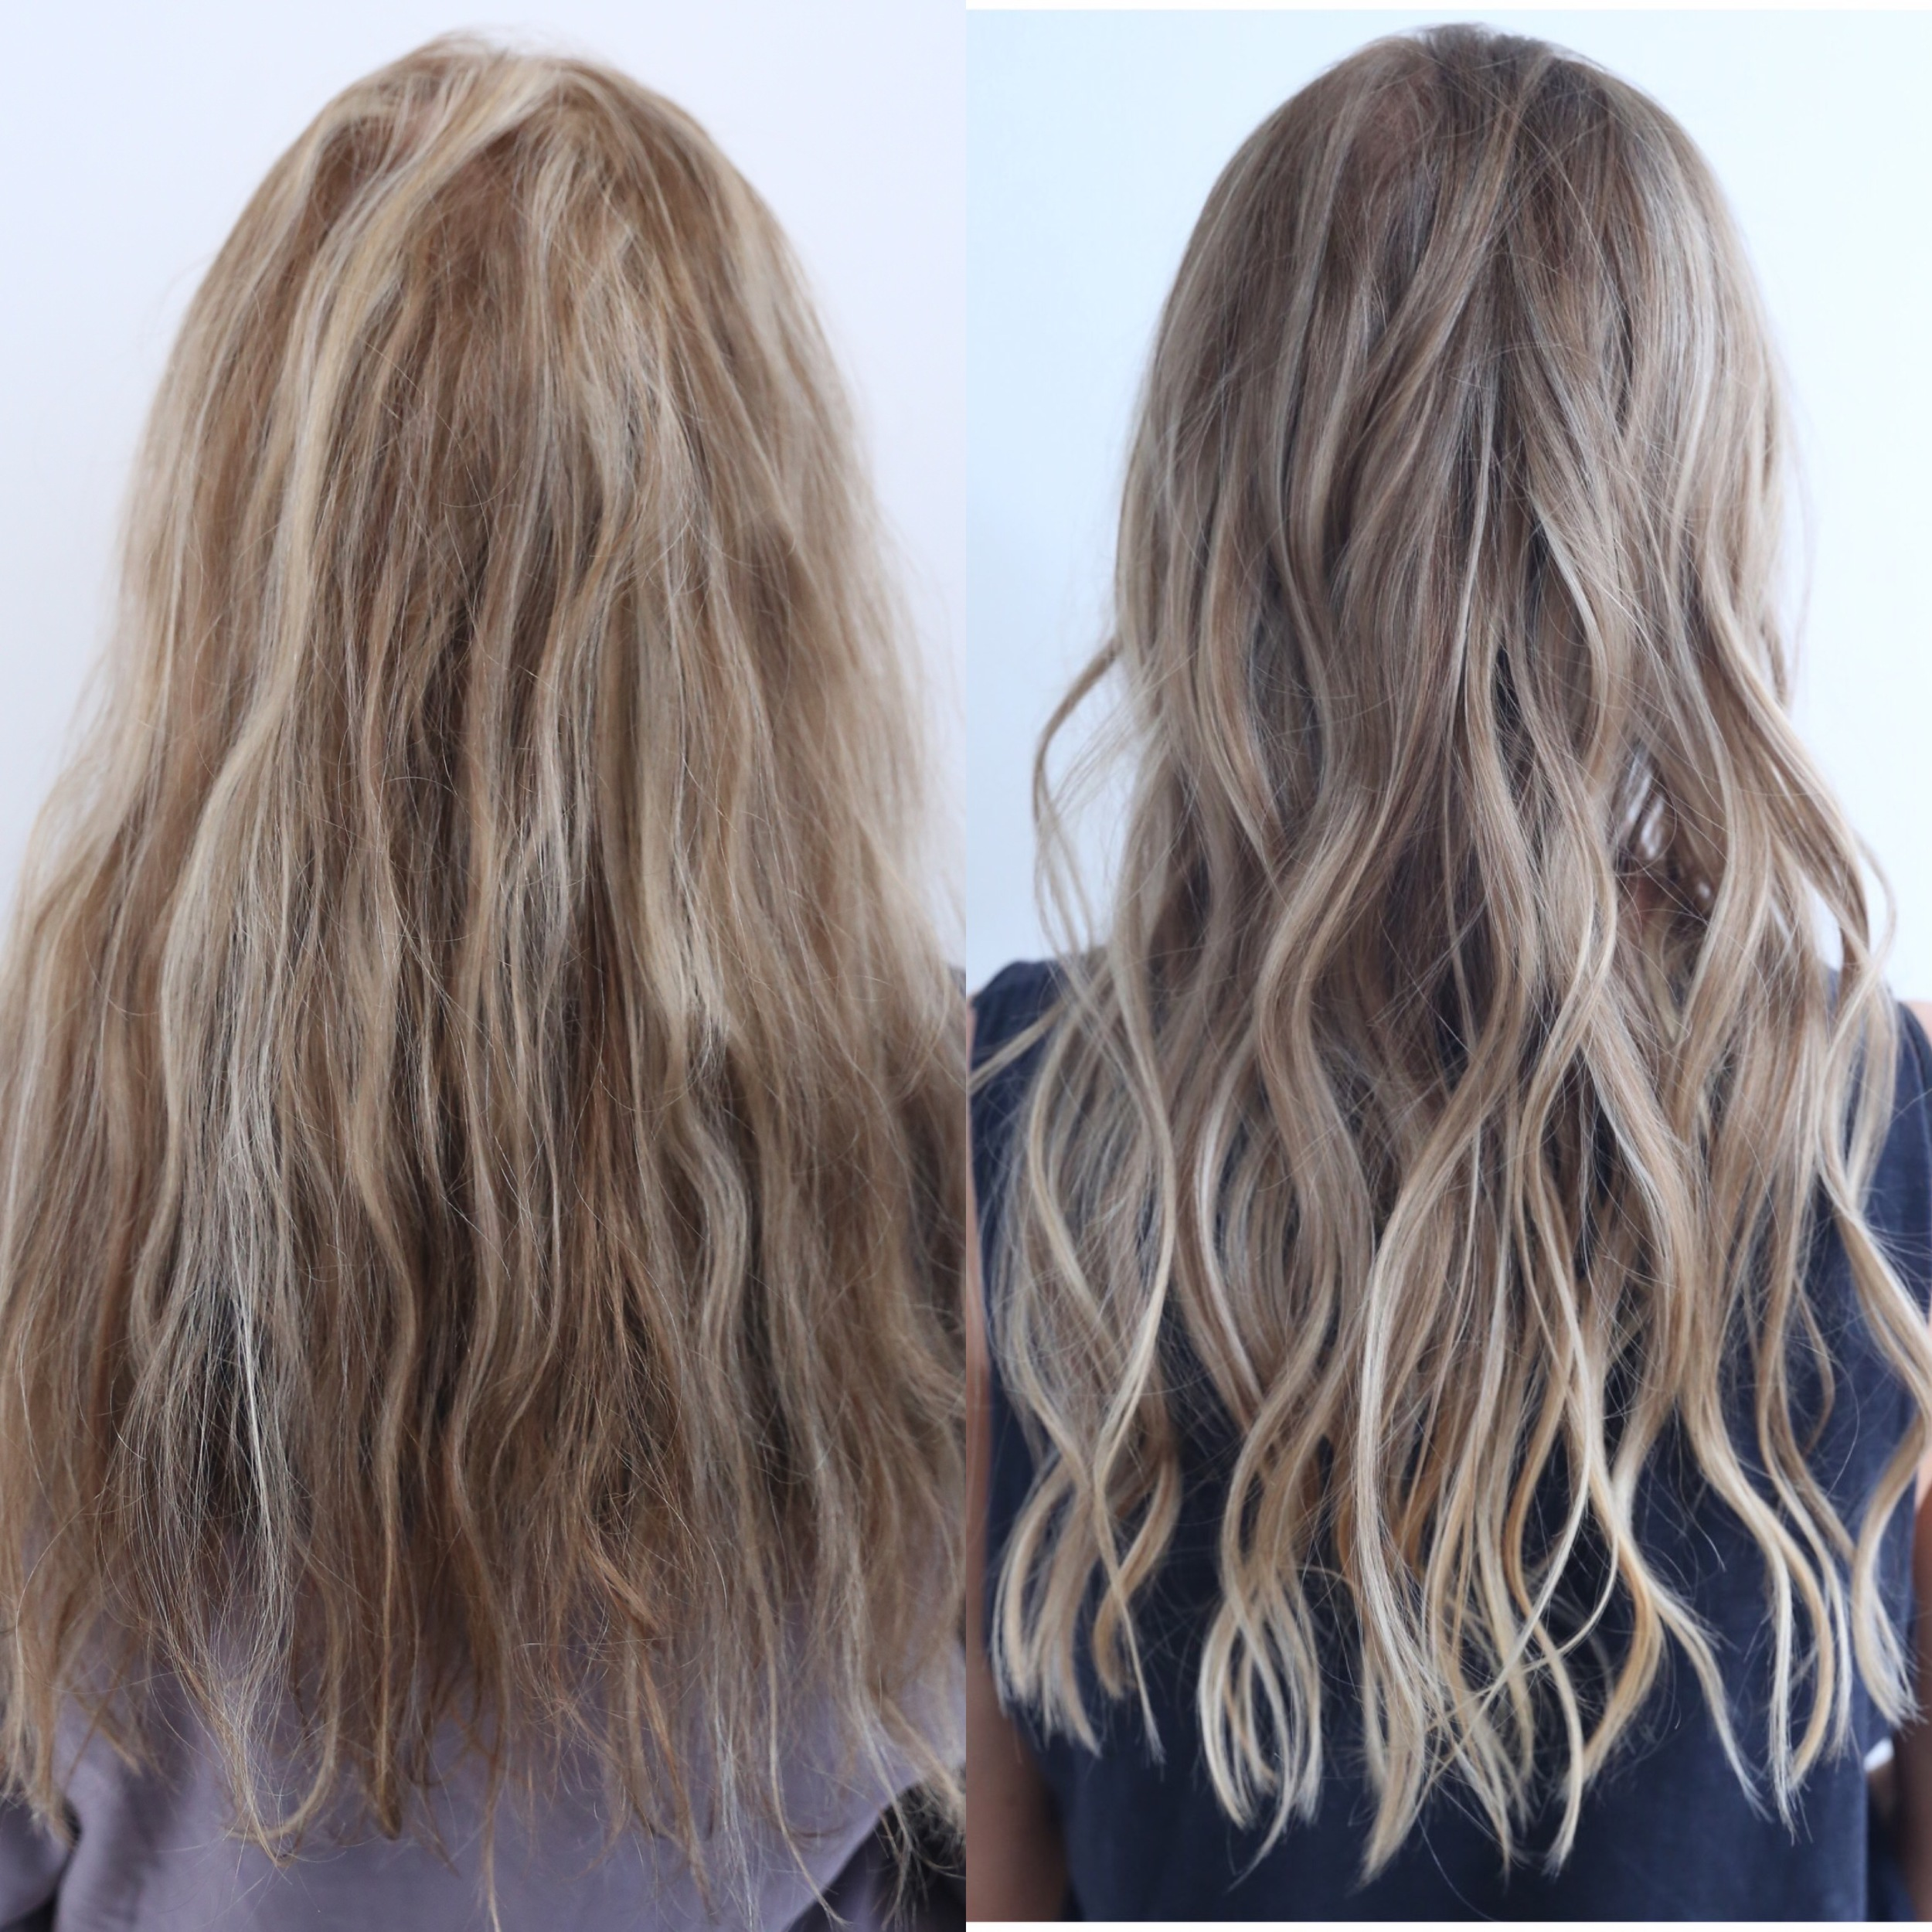 Blog stephen garrison re created a root with a 5n redken shades and added highlights to the ends to give a more natural beachy feel pmusecretfo Images